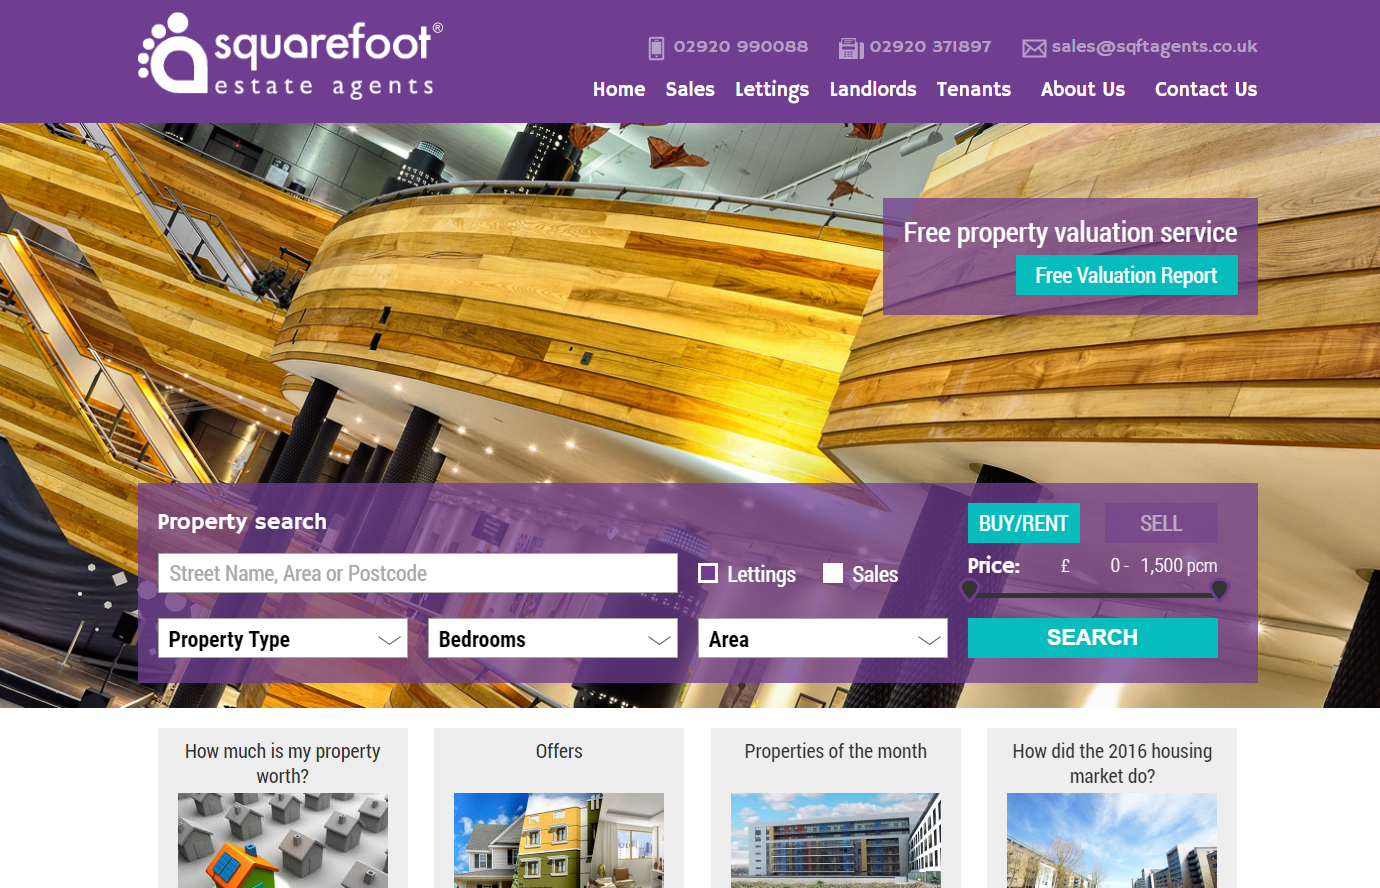 SquareFootAgents.co.uk